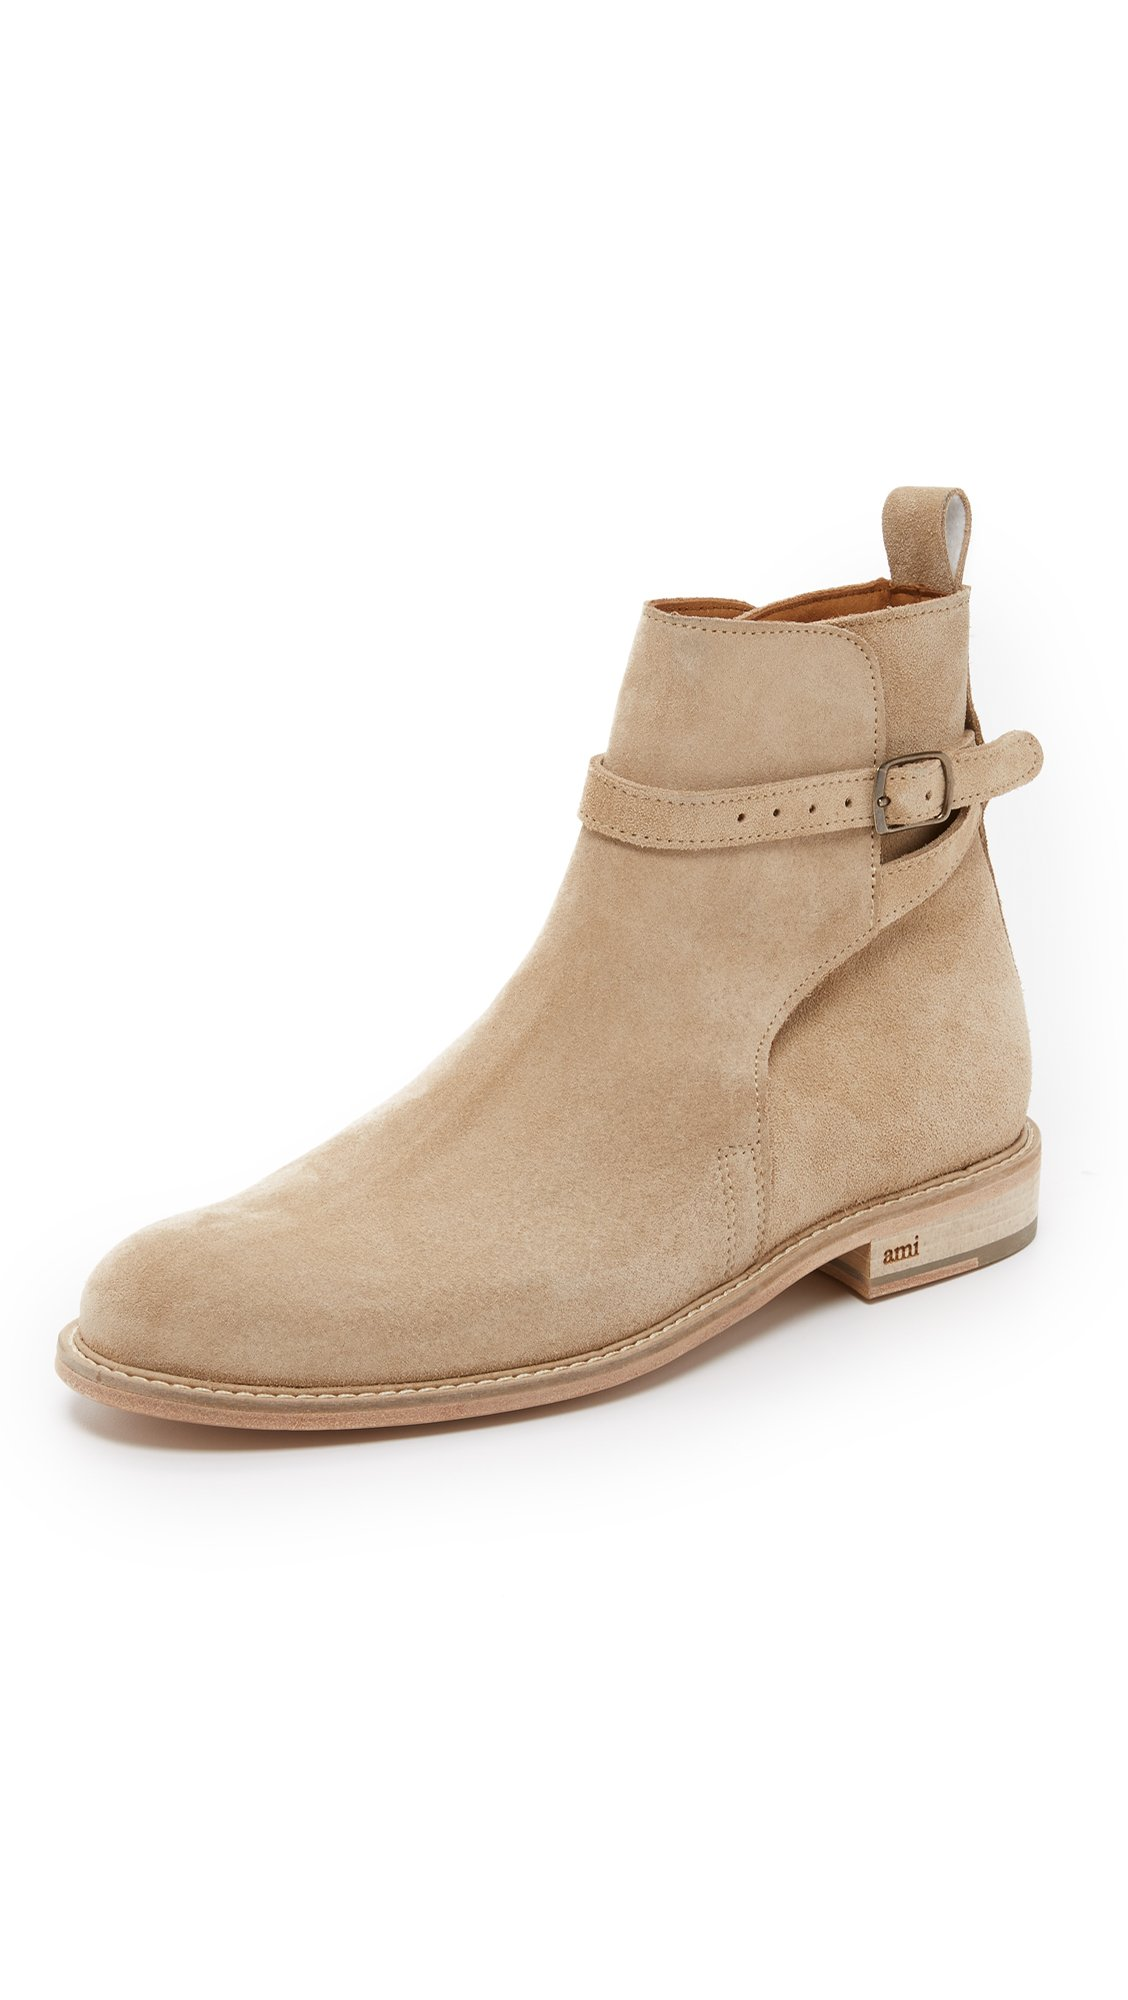 Lyst Ami Buckle Boots In Natural For Men